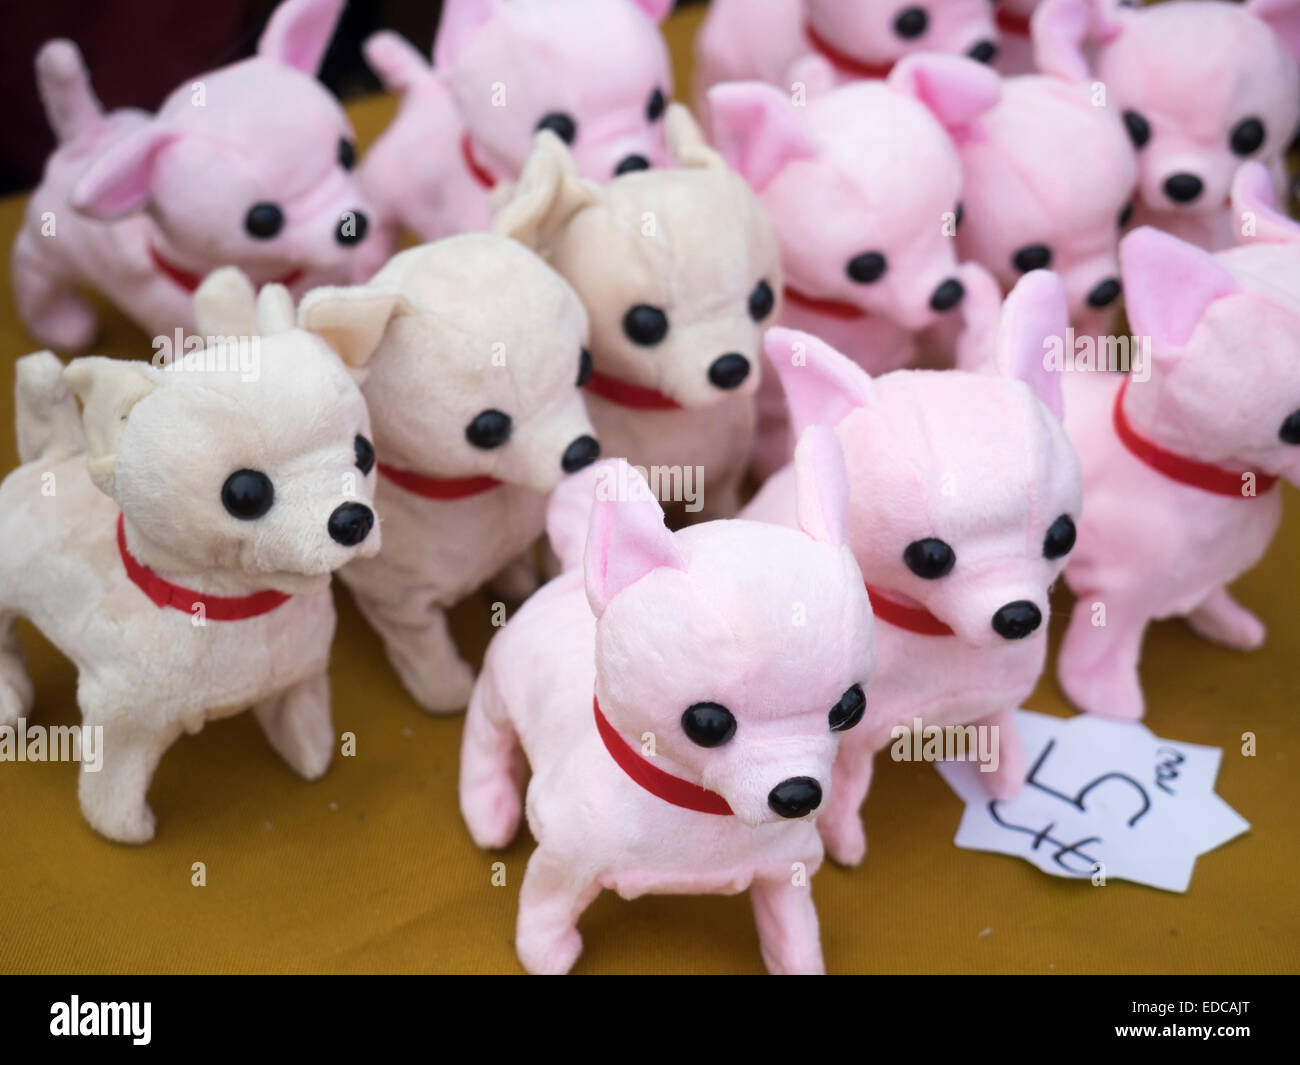 small pink toy dogs on sale Bakewell town before Christmas in Derbyshire England - Stock Image